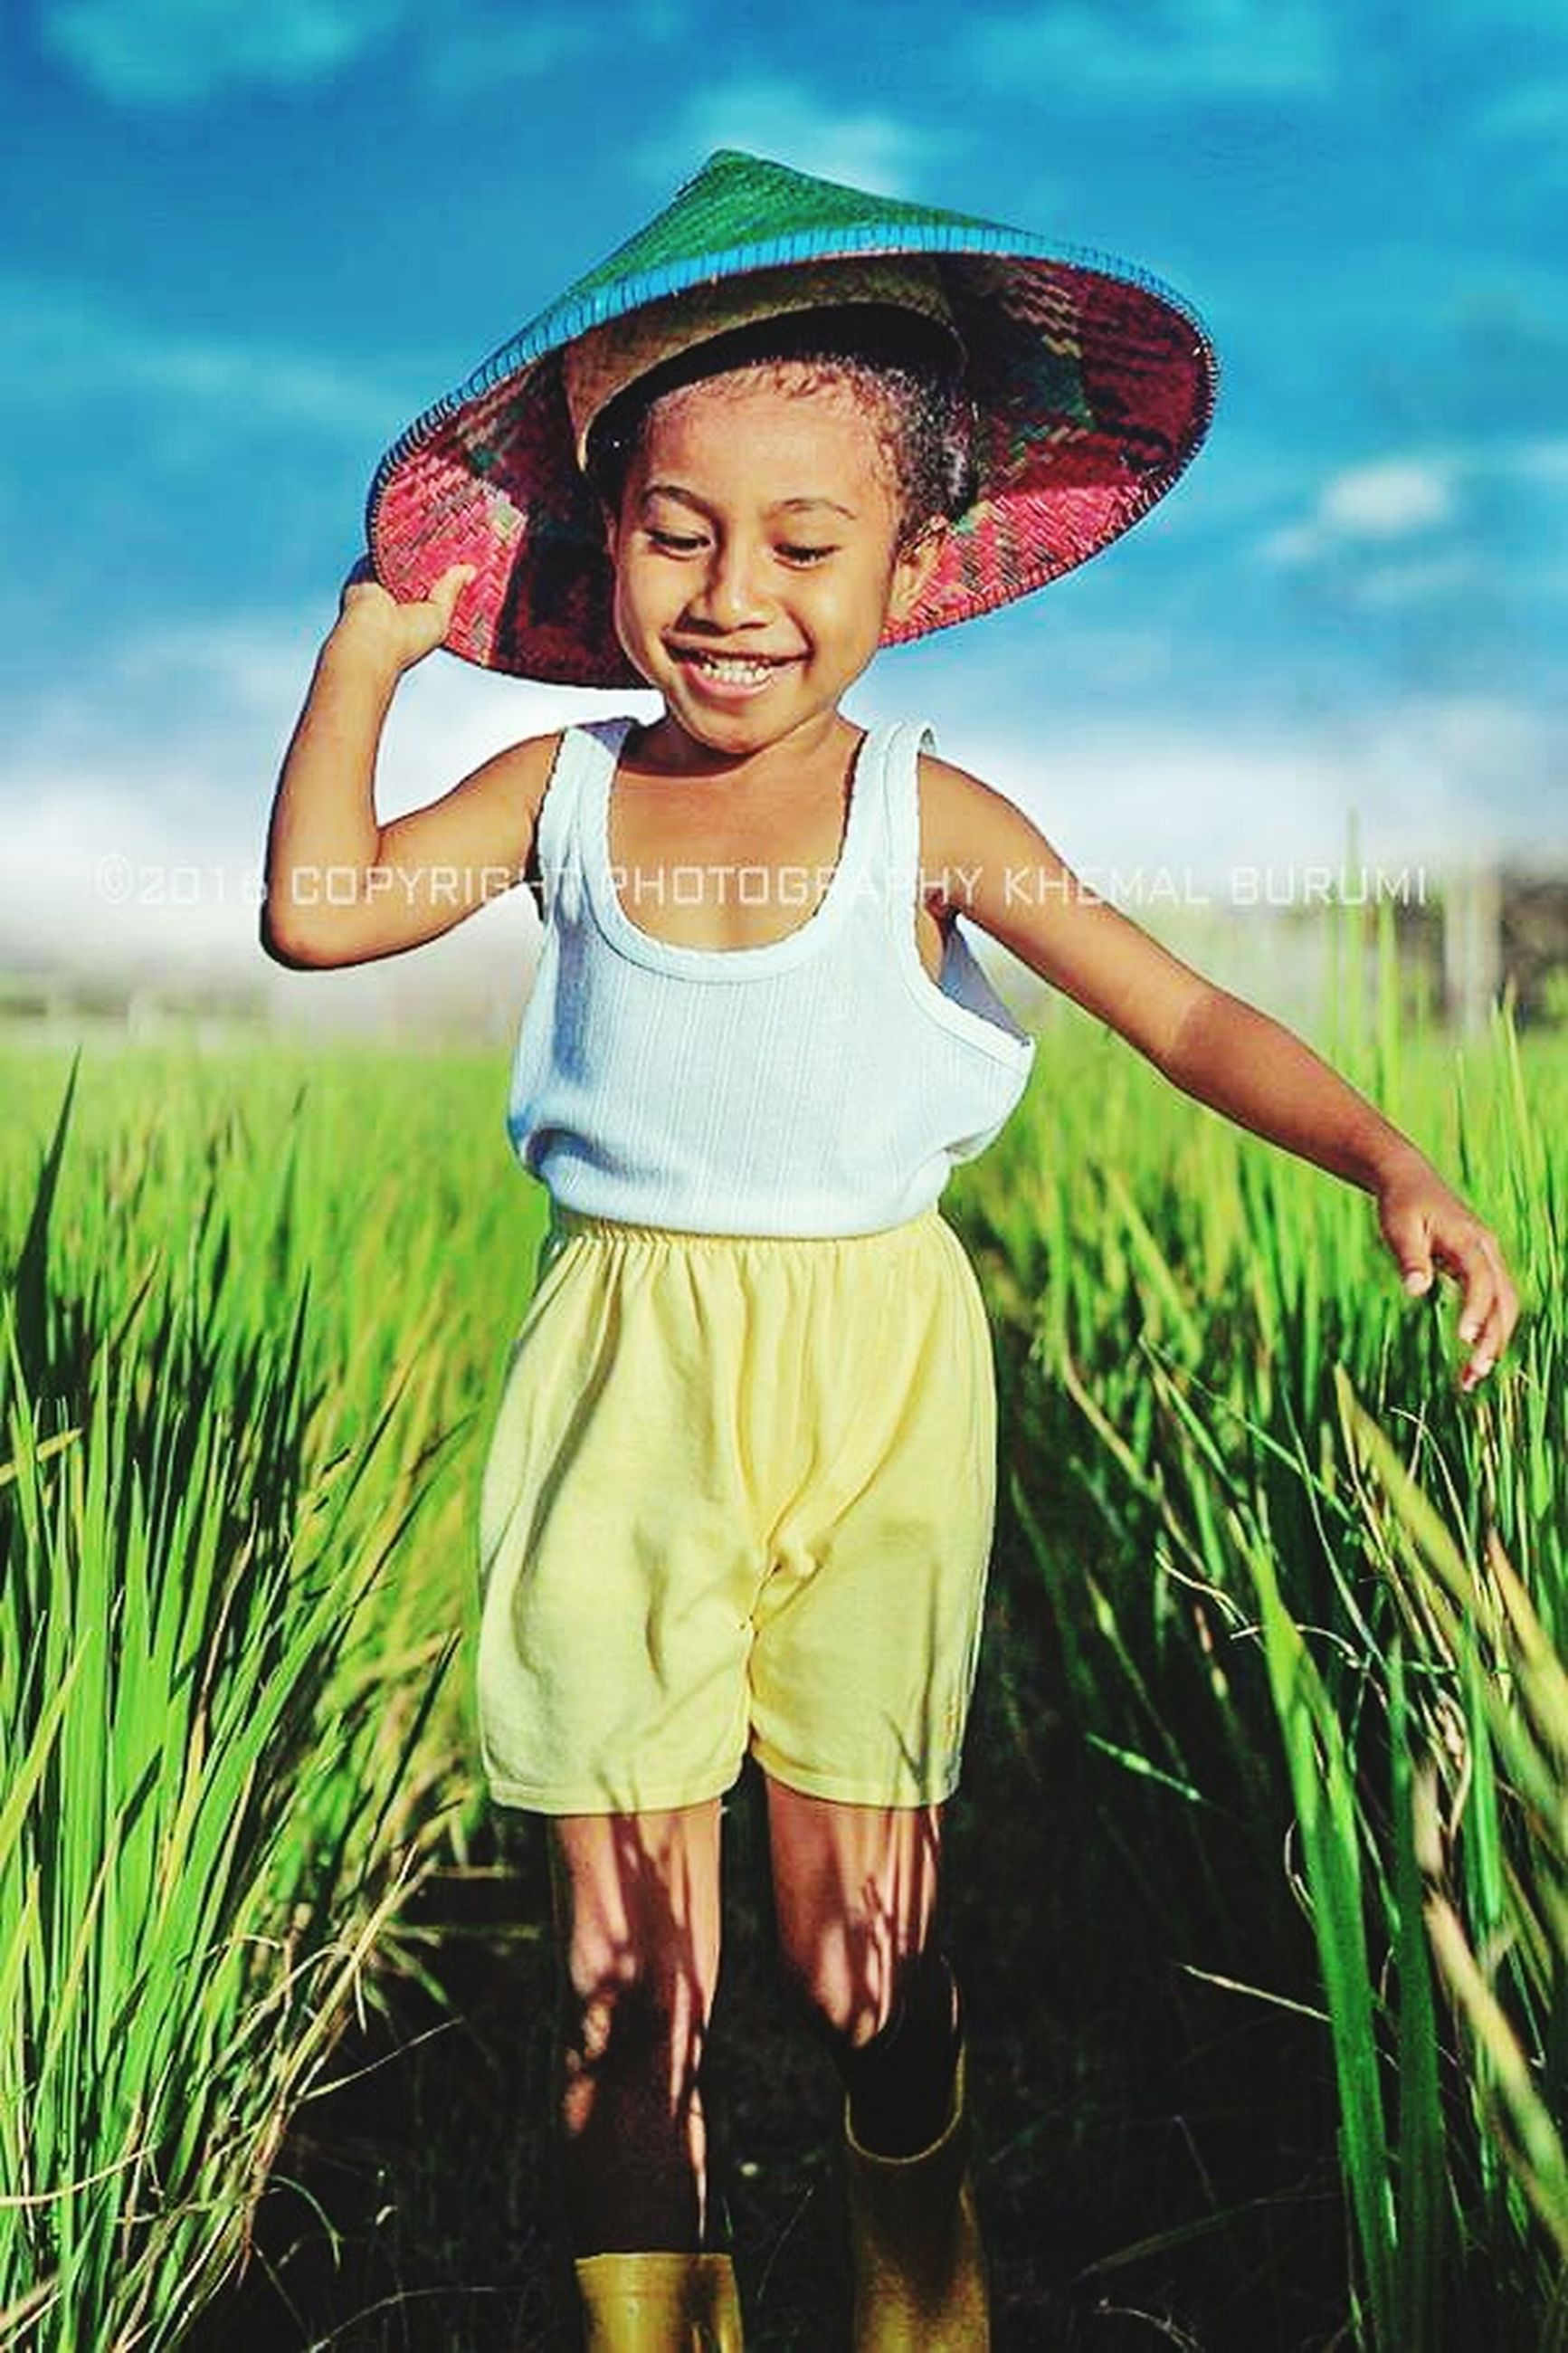 child, childhood, smiling, happiness, plant, hat, field, grass, one person, land, clothing, front view, girls, looking at camera, portrait, standing, casual clothing, nature, three quarter length, innocence, hair, outdoors